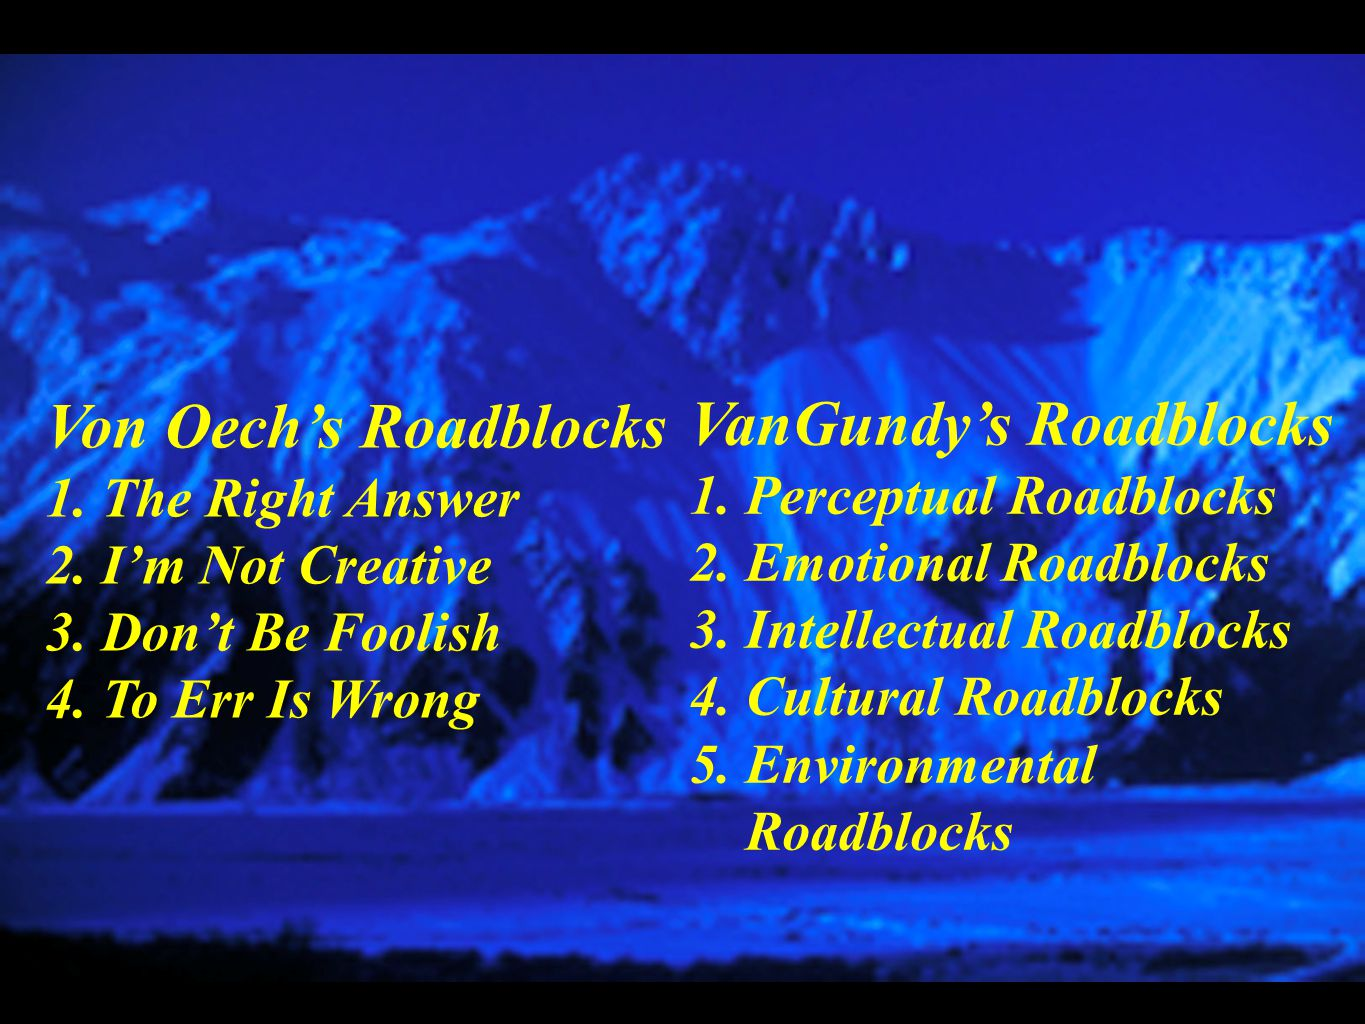 Von Oech's Roadblocks 1. The Right Answer 2. I'm Not Creative 3. Don't Be Foolish 4. To Err Is Wrong VanGundy's Roadblocks 1. Perceptual Roadblocks 2.